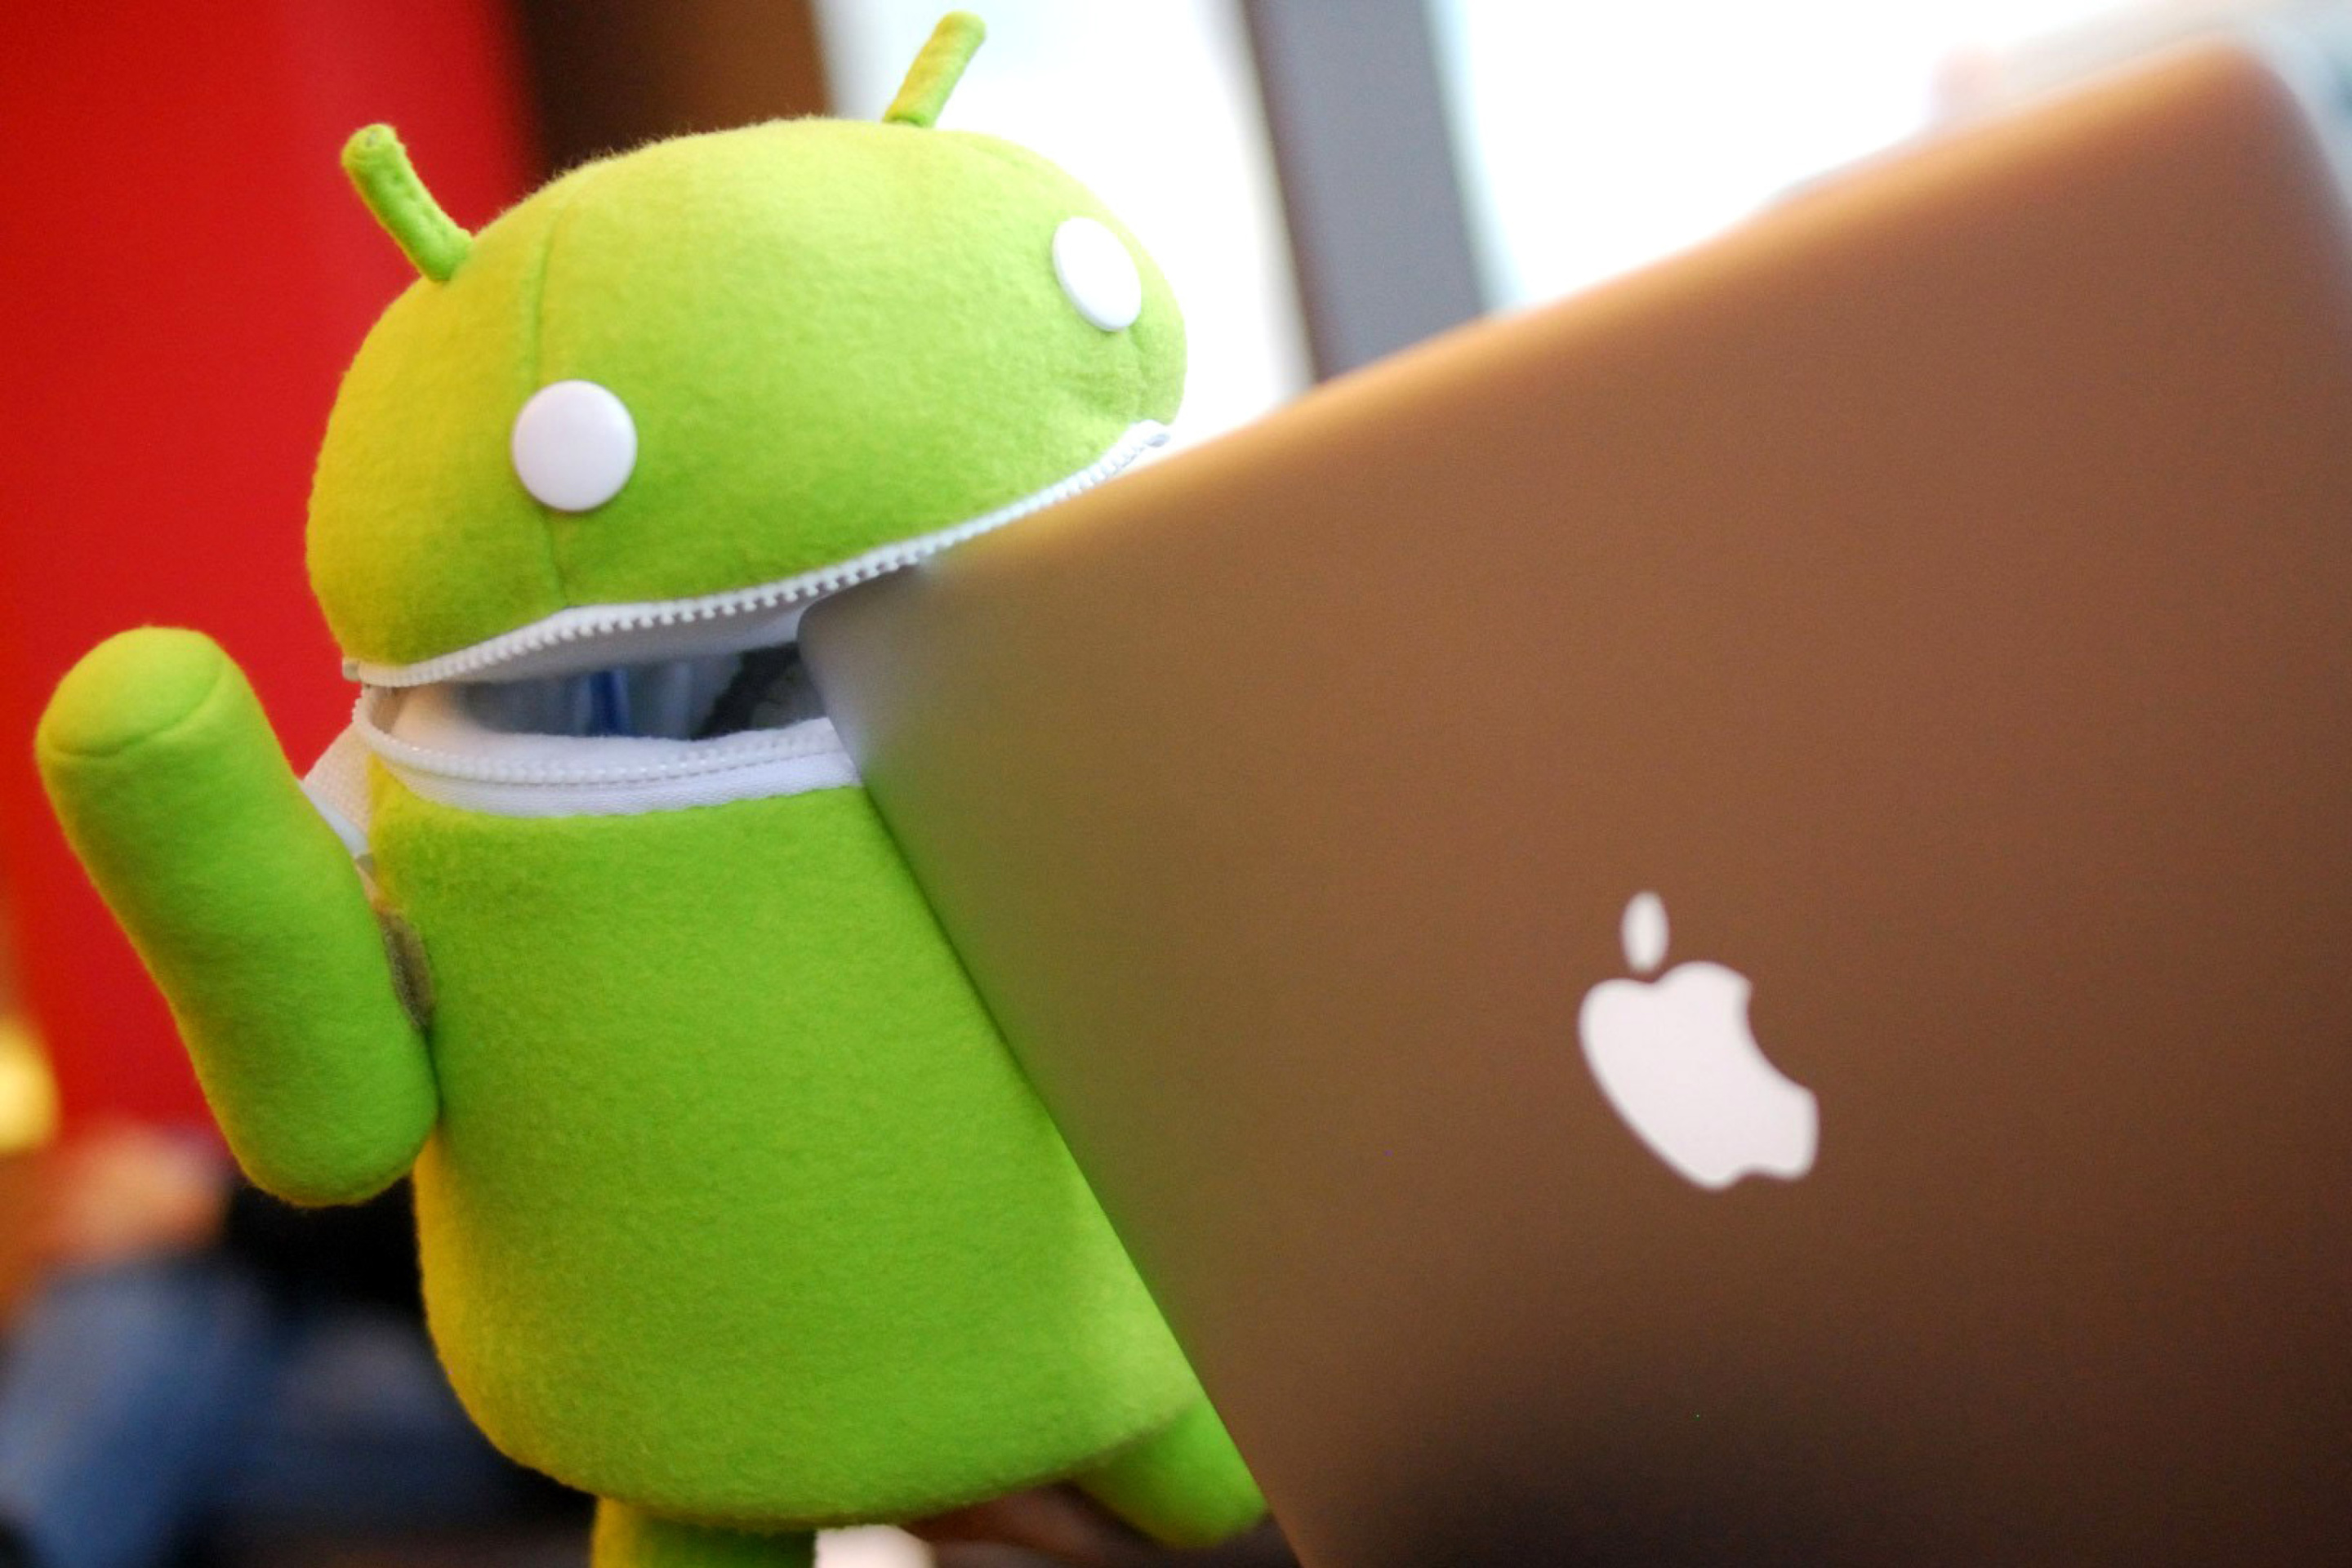 Android Robot and Apple MacBook Air Laptop wallpaper 2880x1920